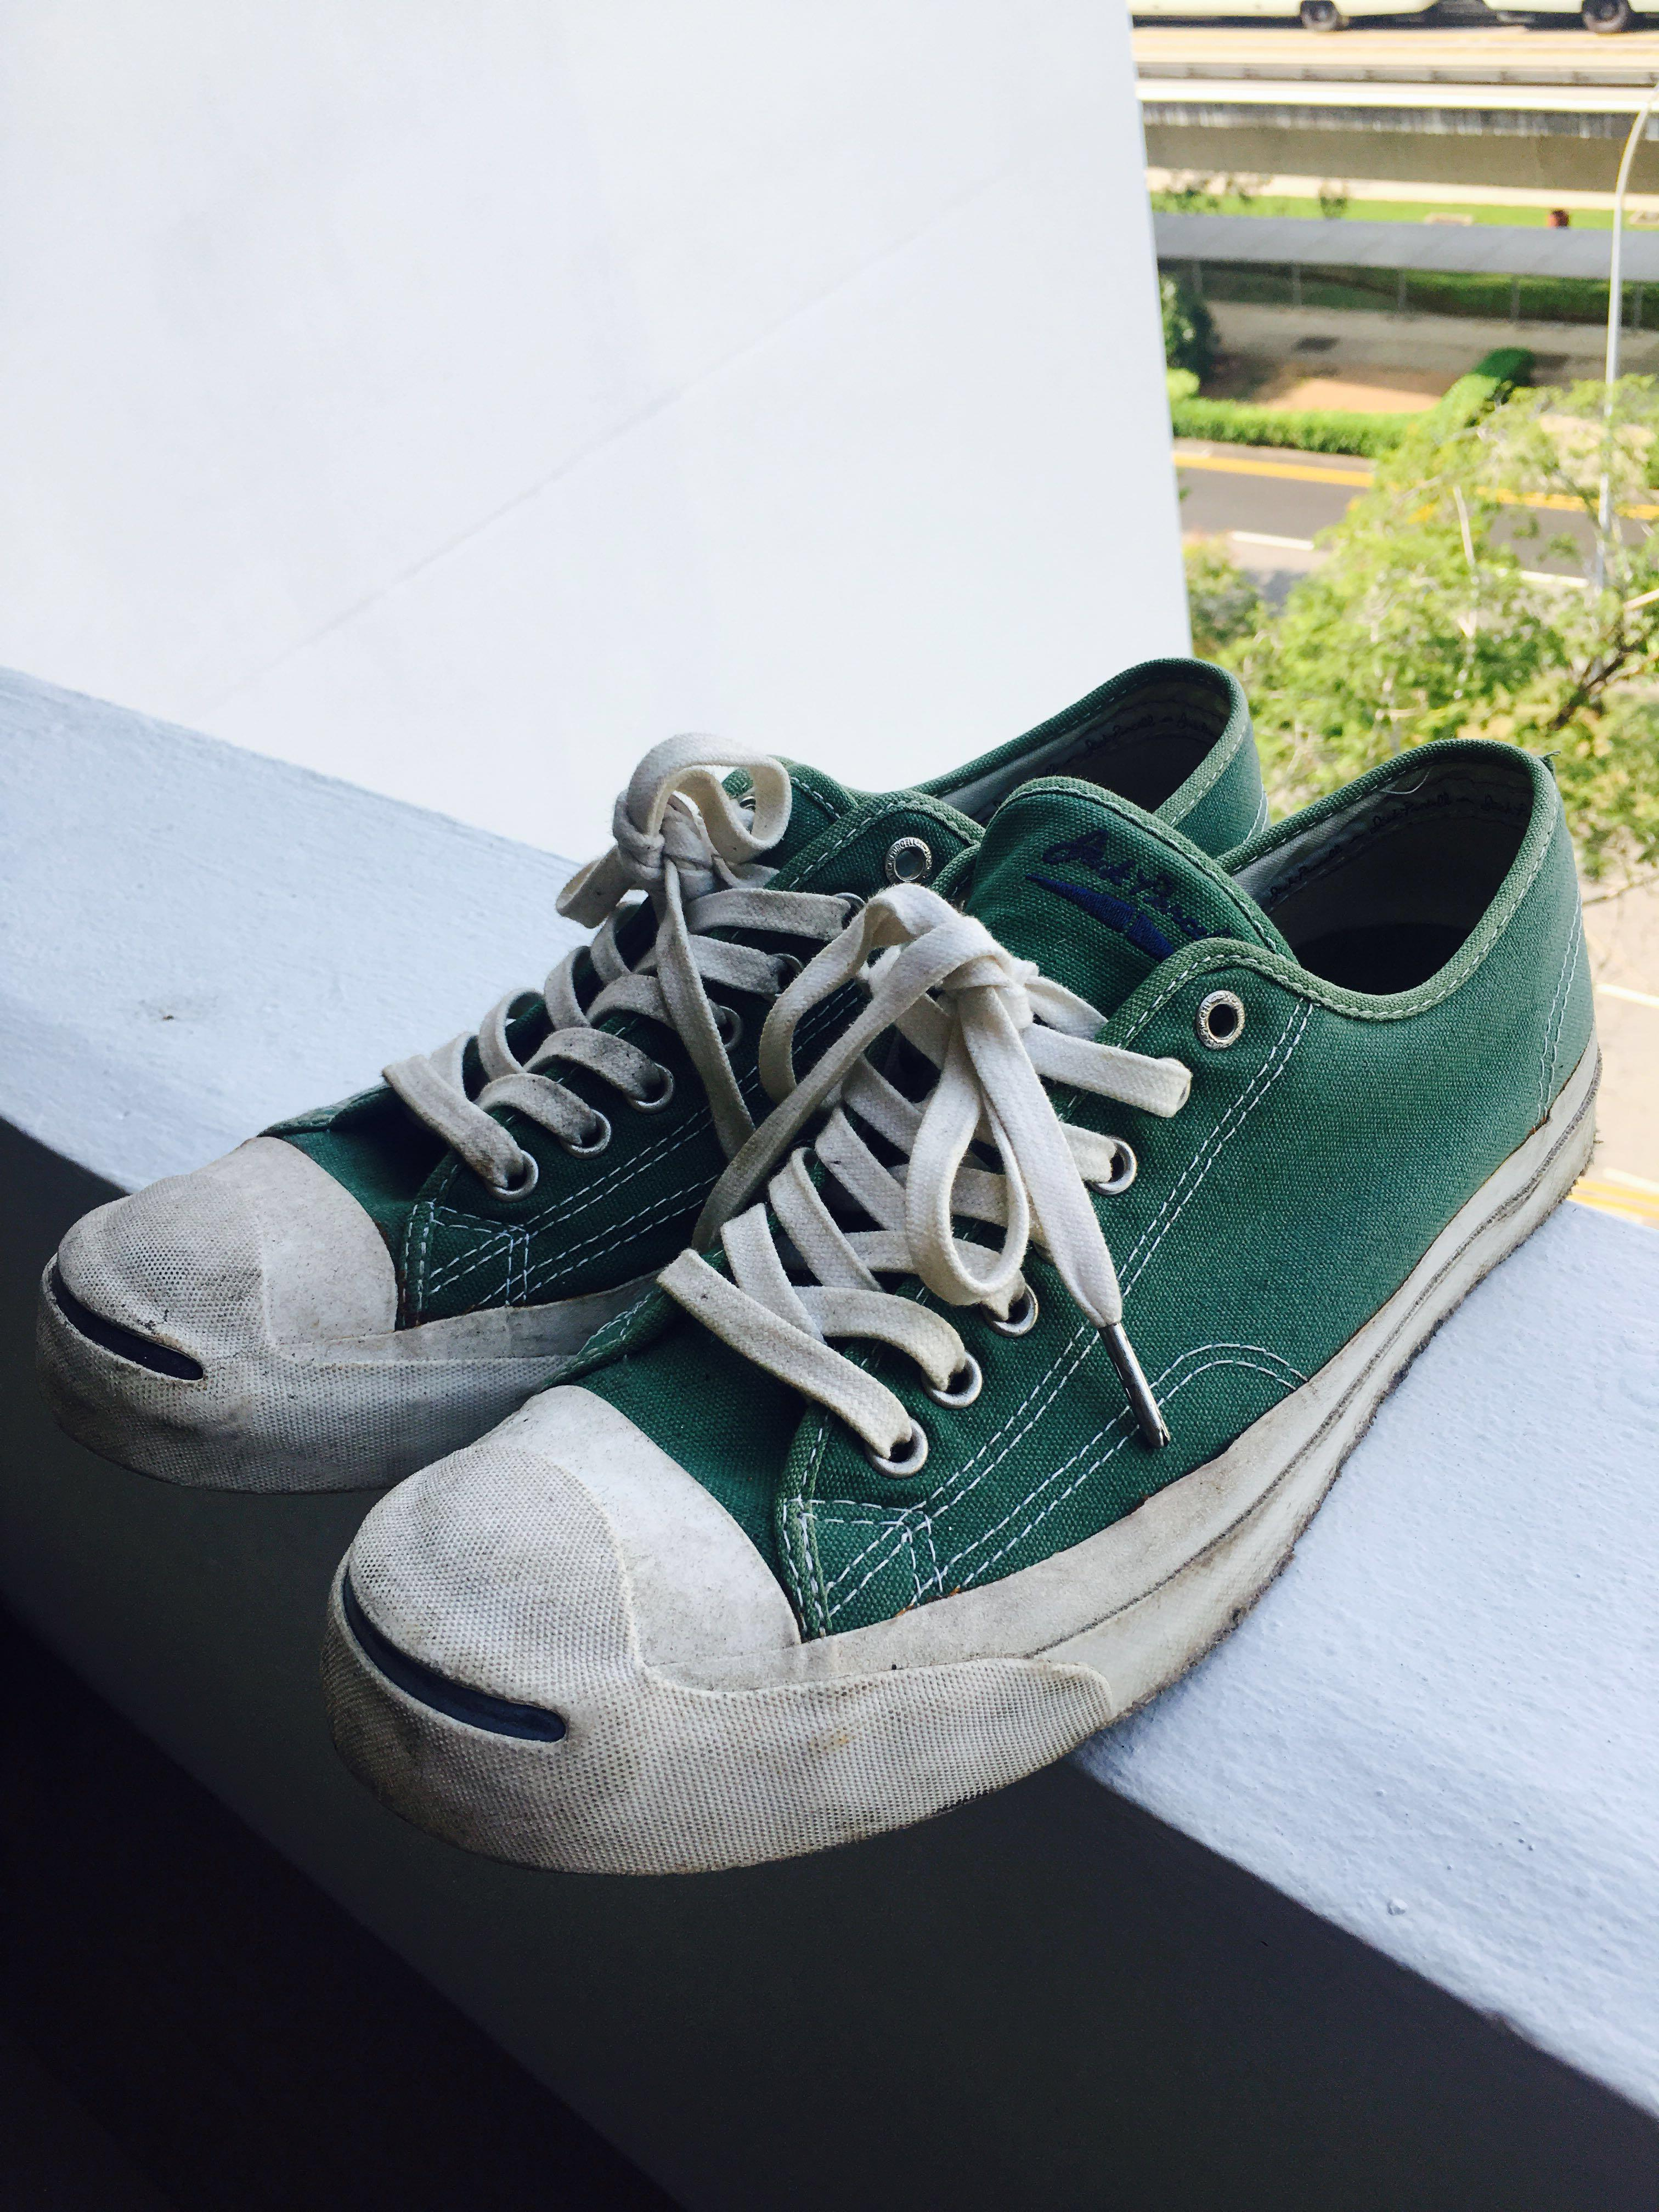 Jack purcell green, Men's Fashion